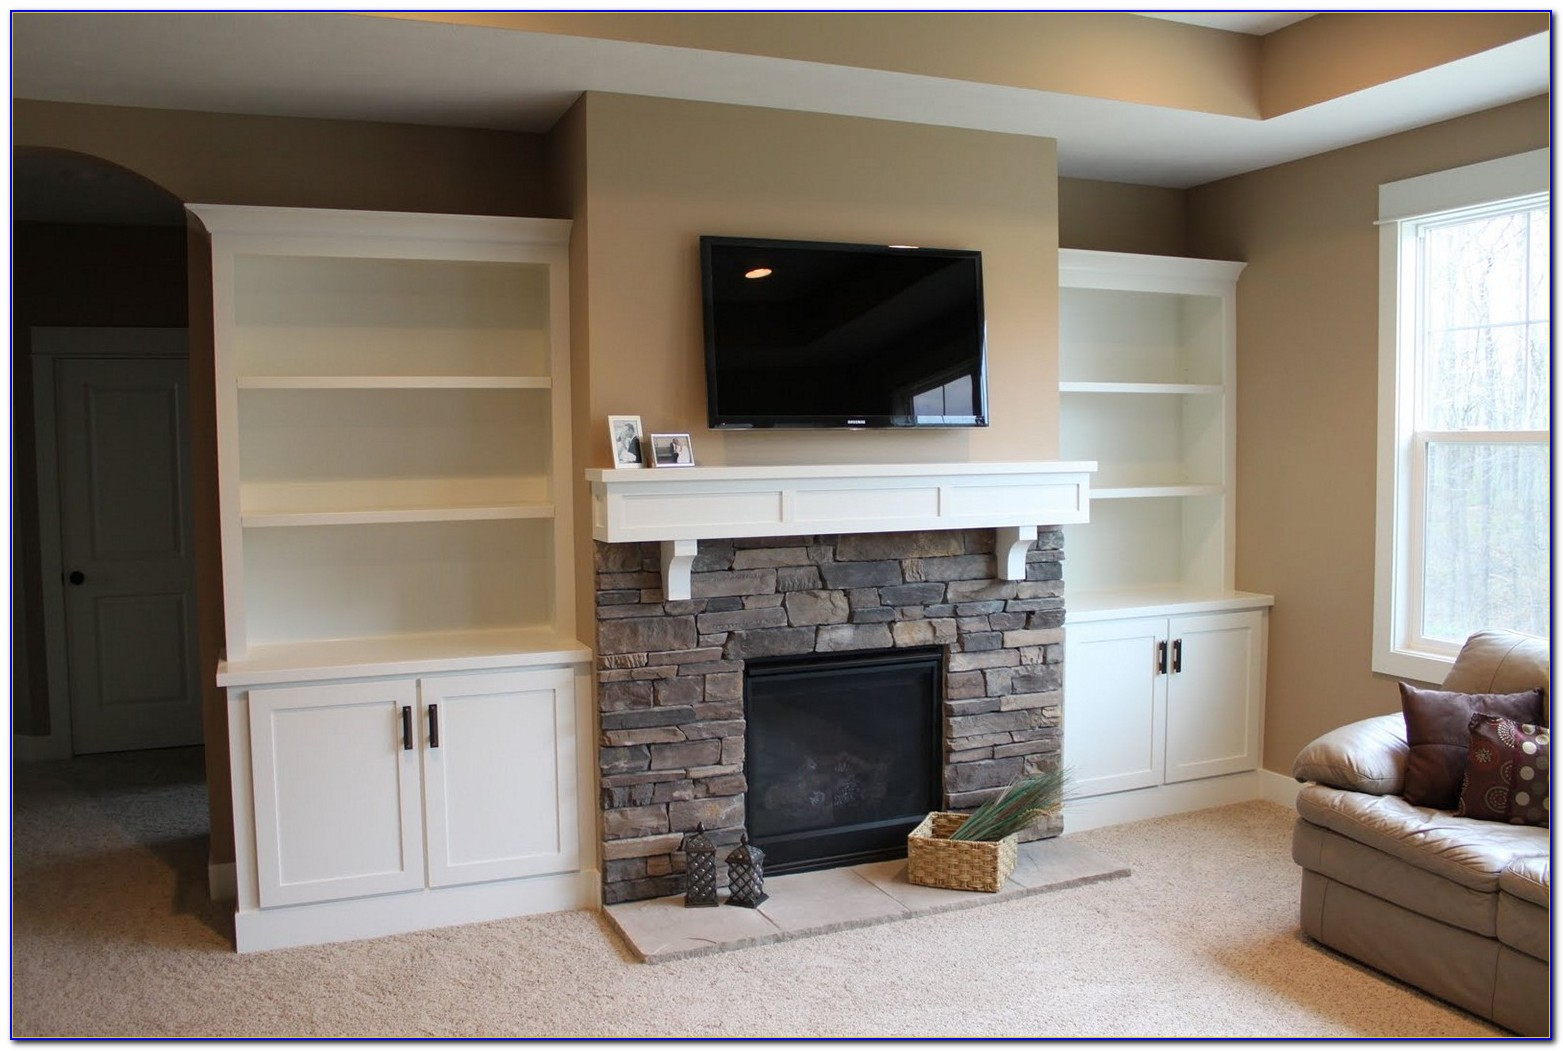 Pictures Of Fireplaces With Built In Bookcases